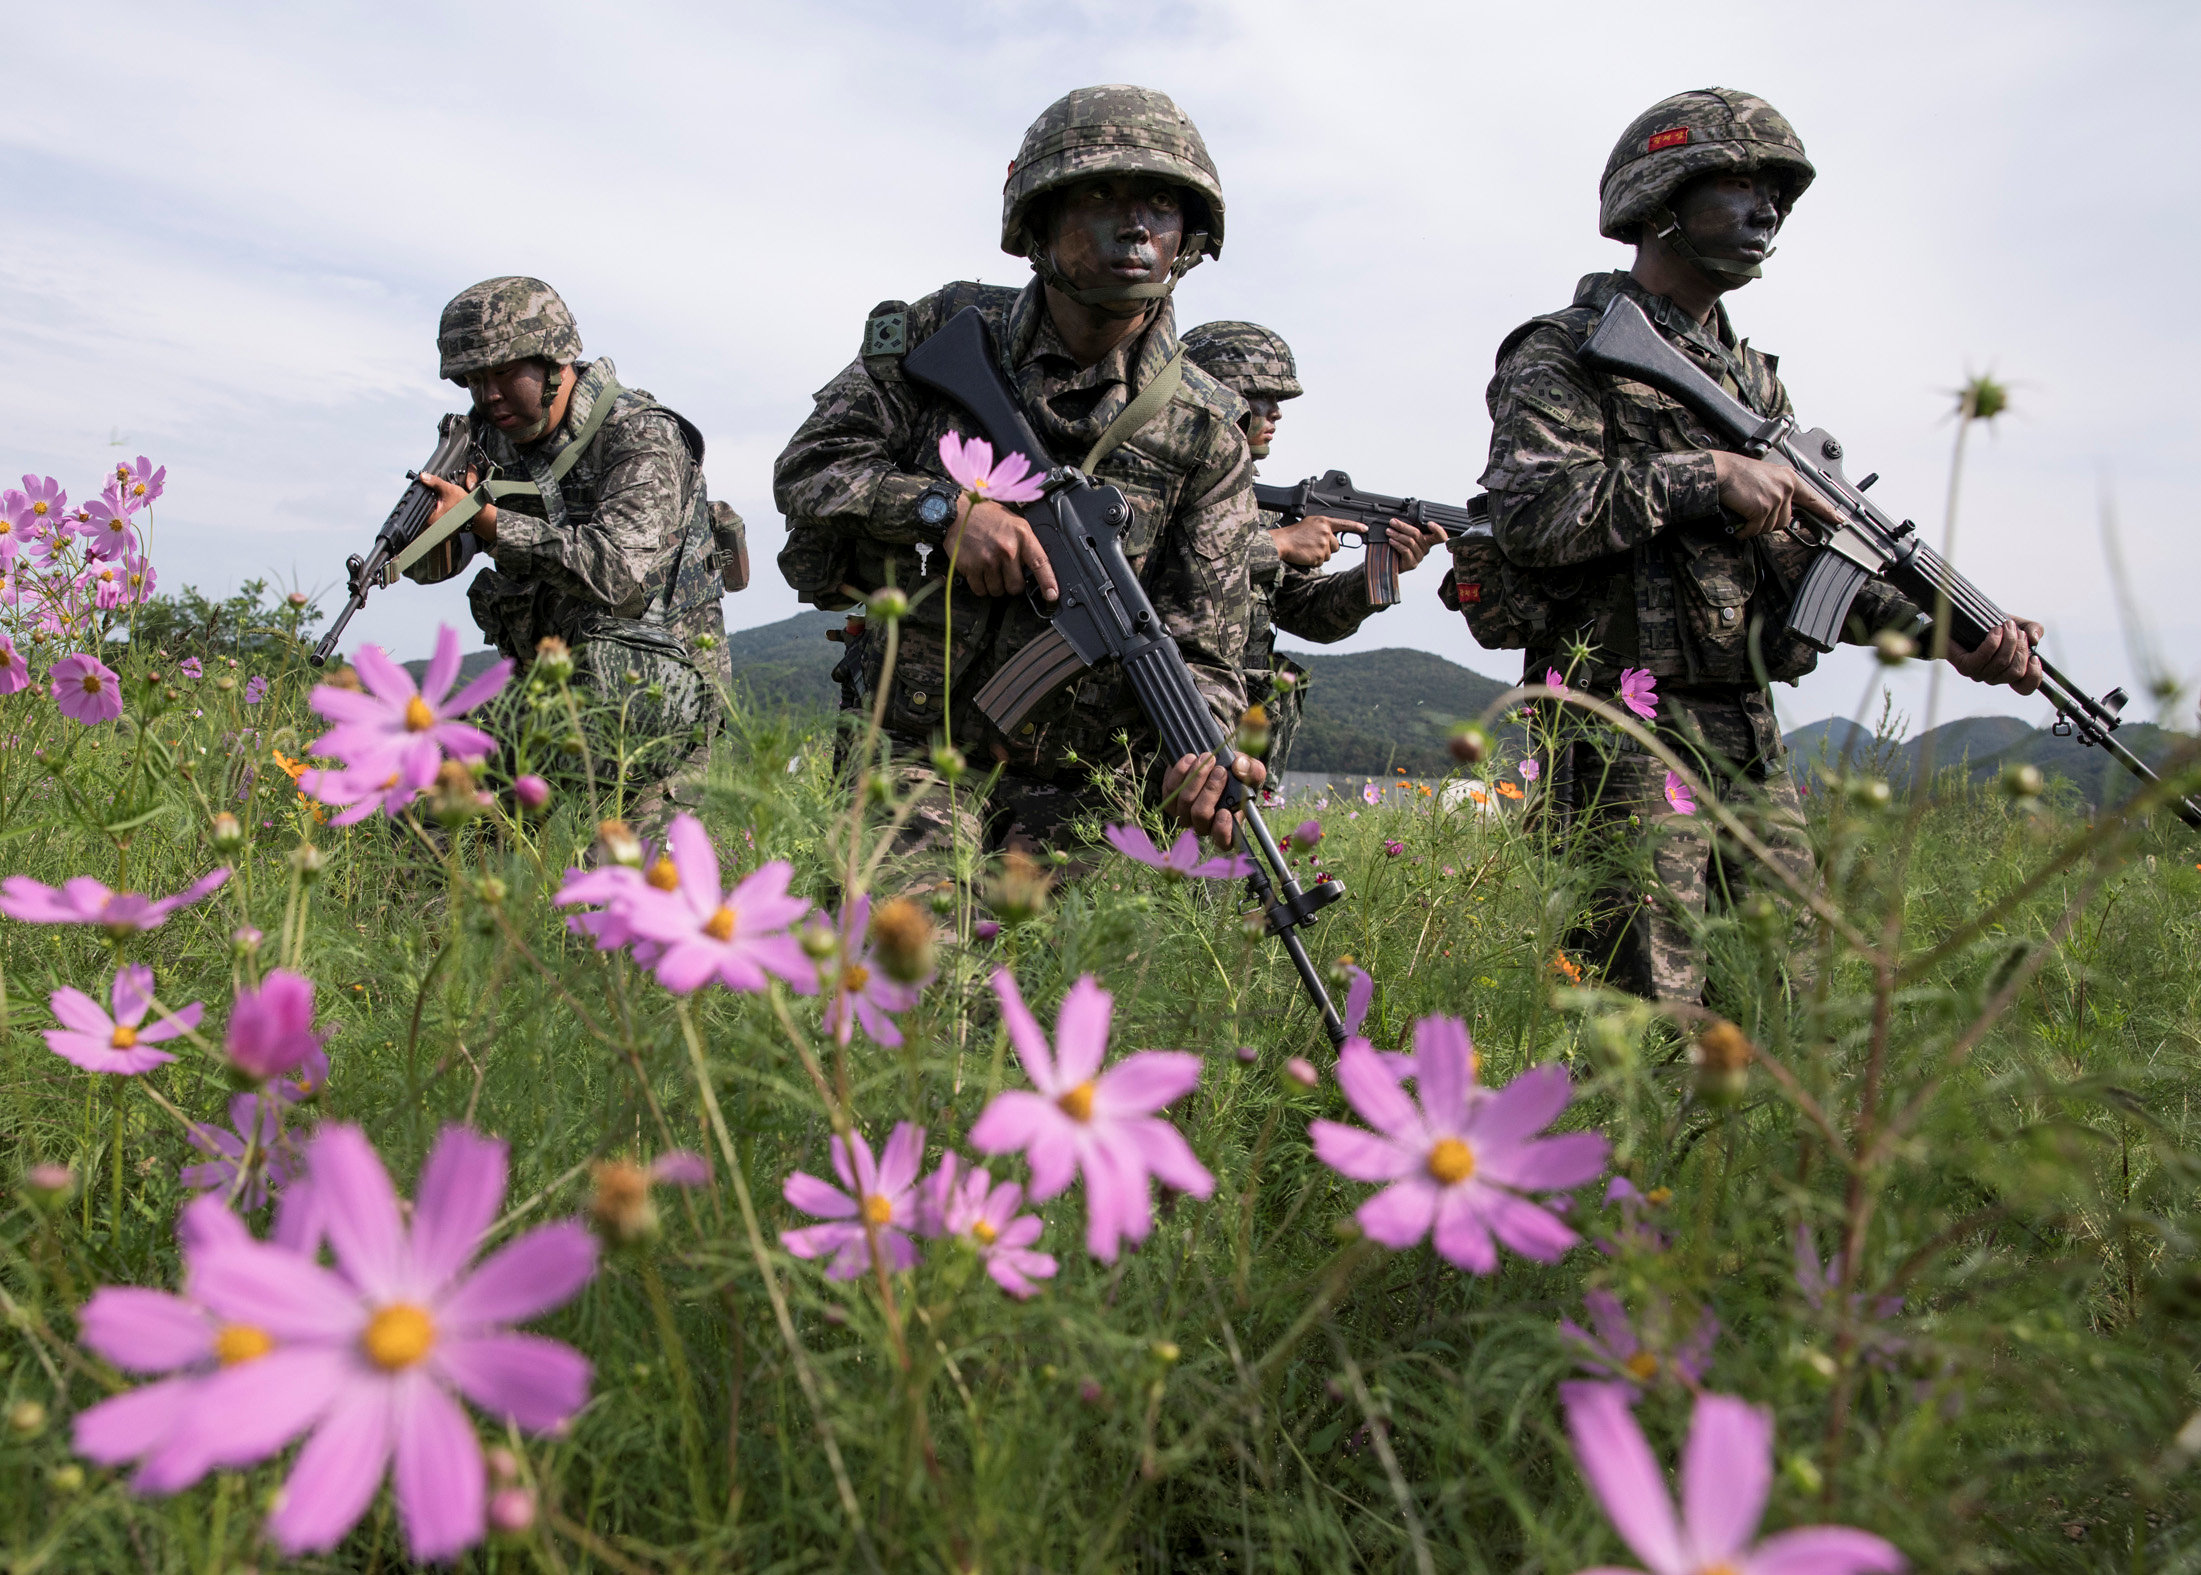 South Korean marines take part in a military exercise on South Korea's Baengnyeong Island, near the disputed sea border with the north, in this handout picture provided by South Korean Marine Corps and released by Yonhap on Sept. 7, 2017. (South Korean Marine Corps/Yonhap via REUTERS)